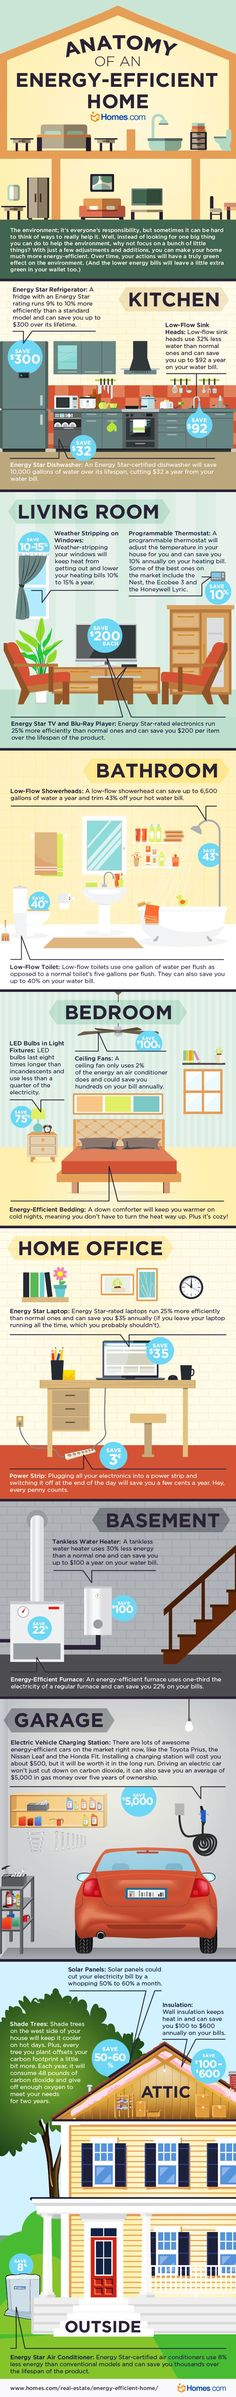 Energy Efficient Home Upgrades in Los Angeles For $0 Down -- Home Improvement Hub -- Via - How to Build an Energy Efficient Home Infographic. Topic: green building, home improvement, energy star appliance, house interior design.